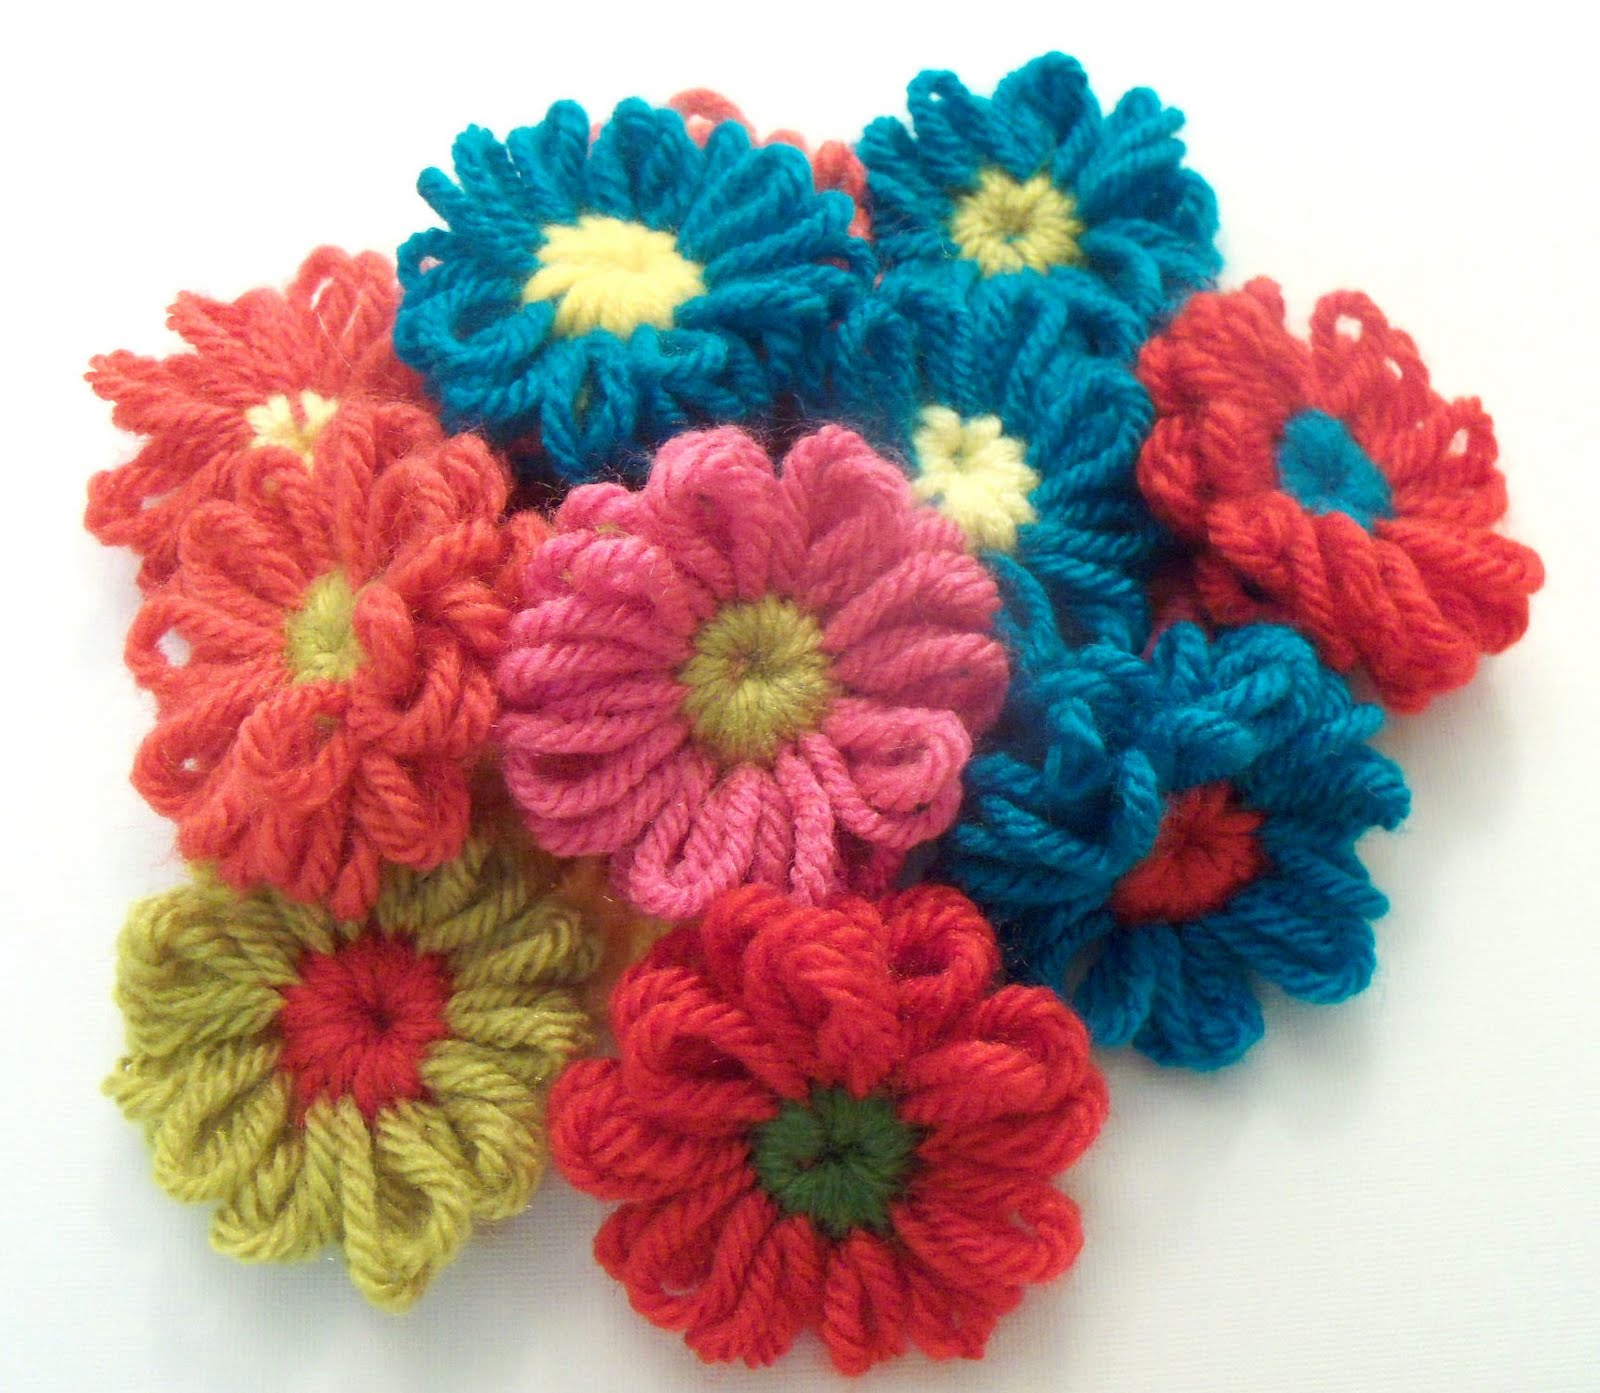 Knitting Flowers On A Loom : Welcome to crochet candi remember loom flowers